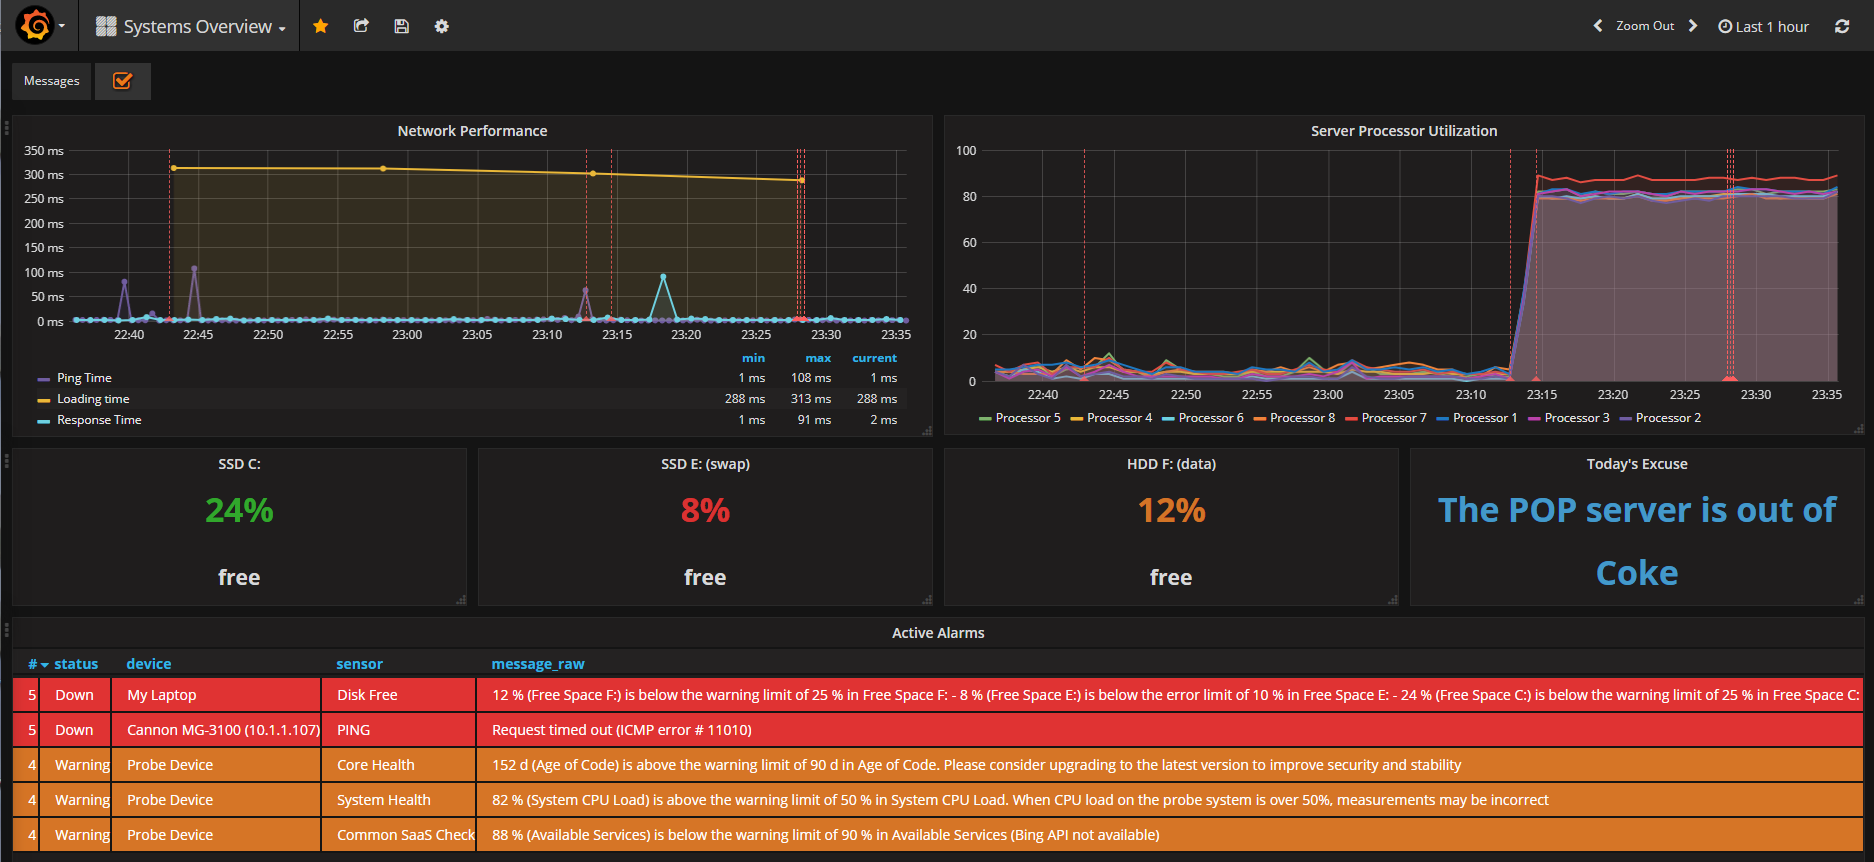 neuralfraud/grafana-prtg - Libraries io